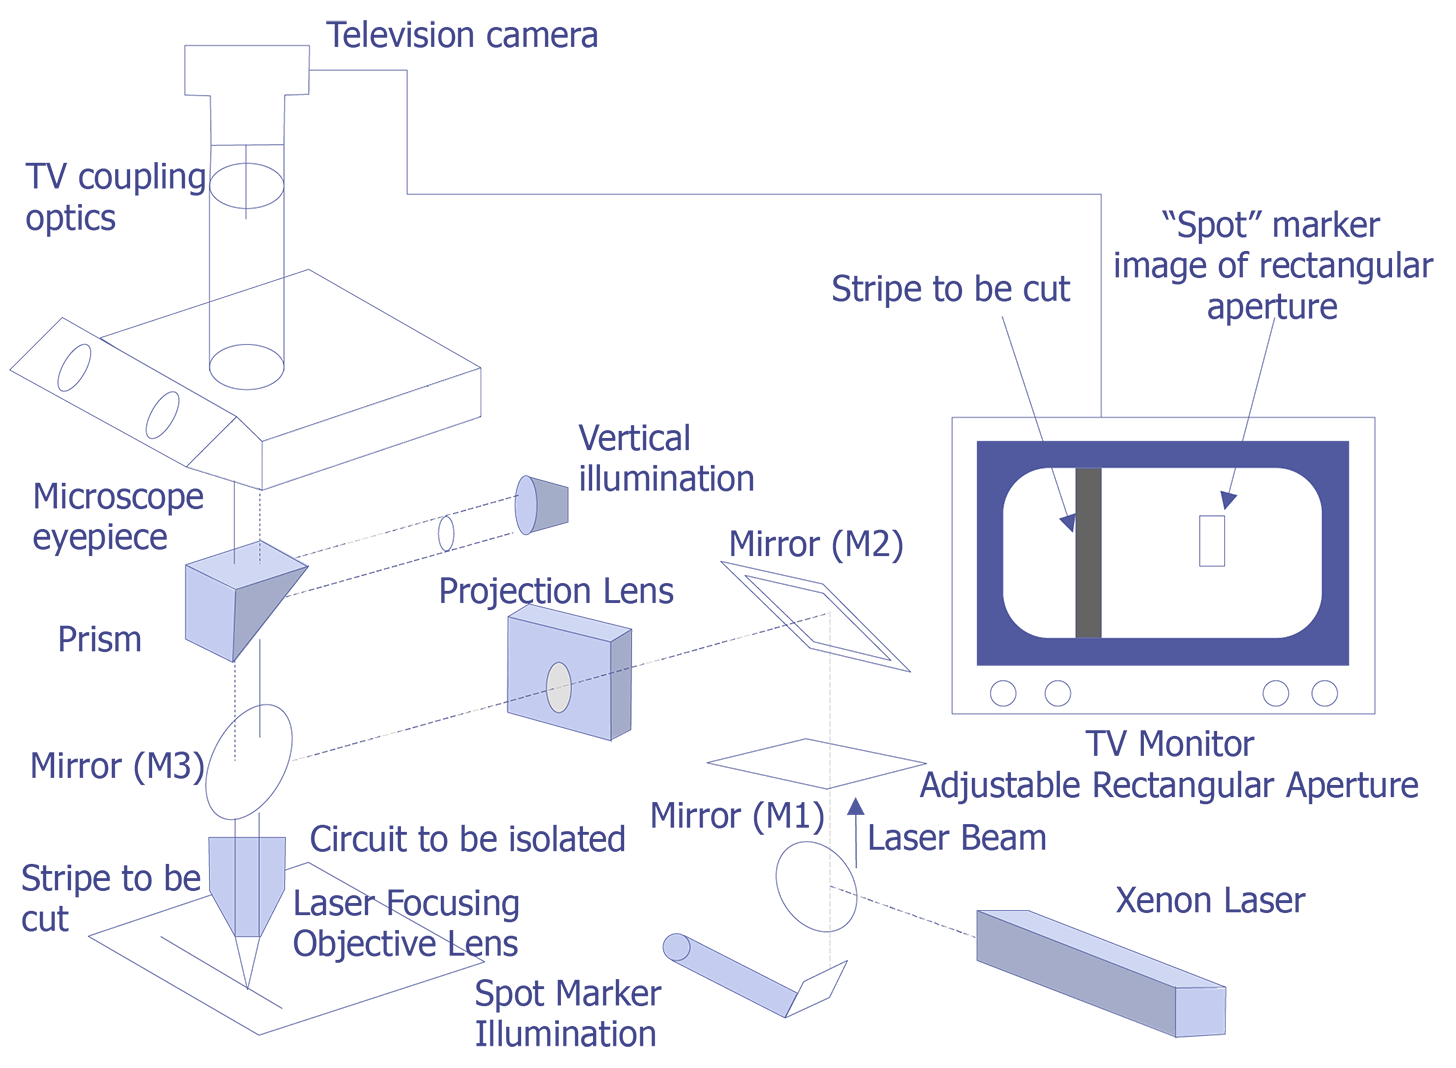 Laser Cutting Semitracks Burning Circuit Diagram Of A Xenon System Courtesy Florod Corp